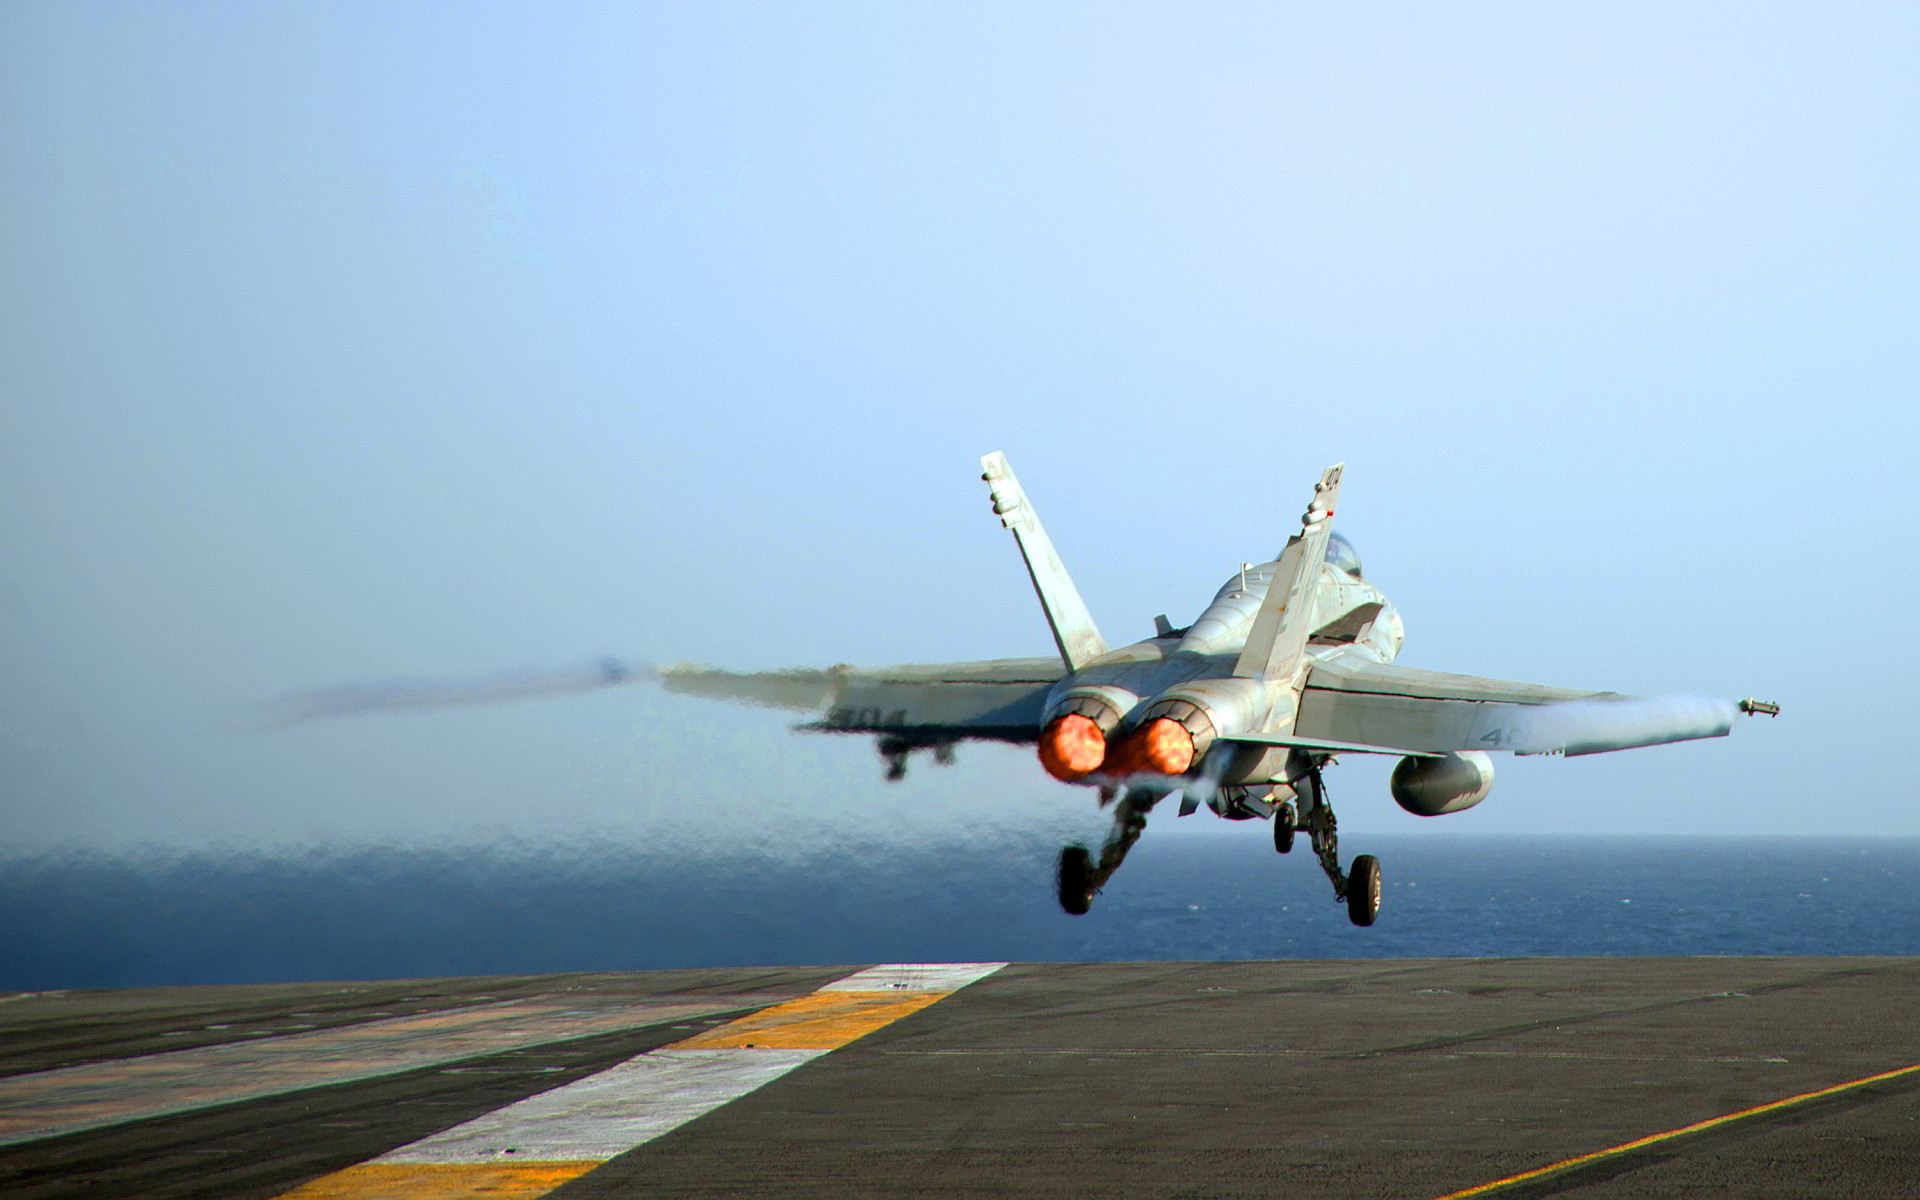 Res: 1920x1200, Related Wallpapers from F14 tomcat sunset. Jet aircraft carrier takeoff